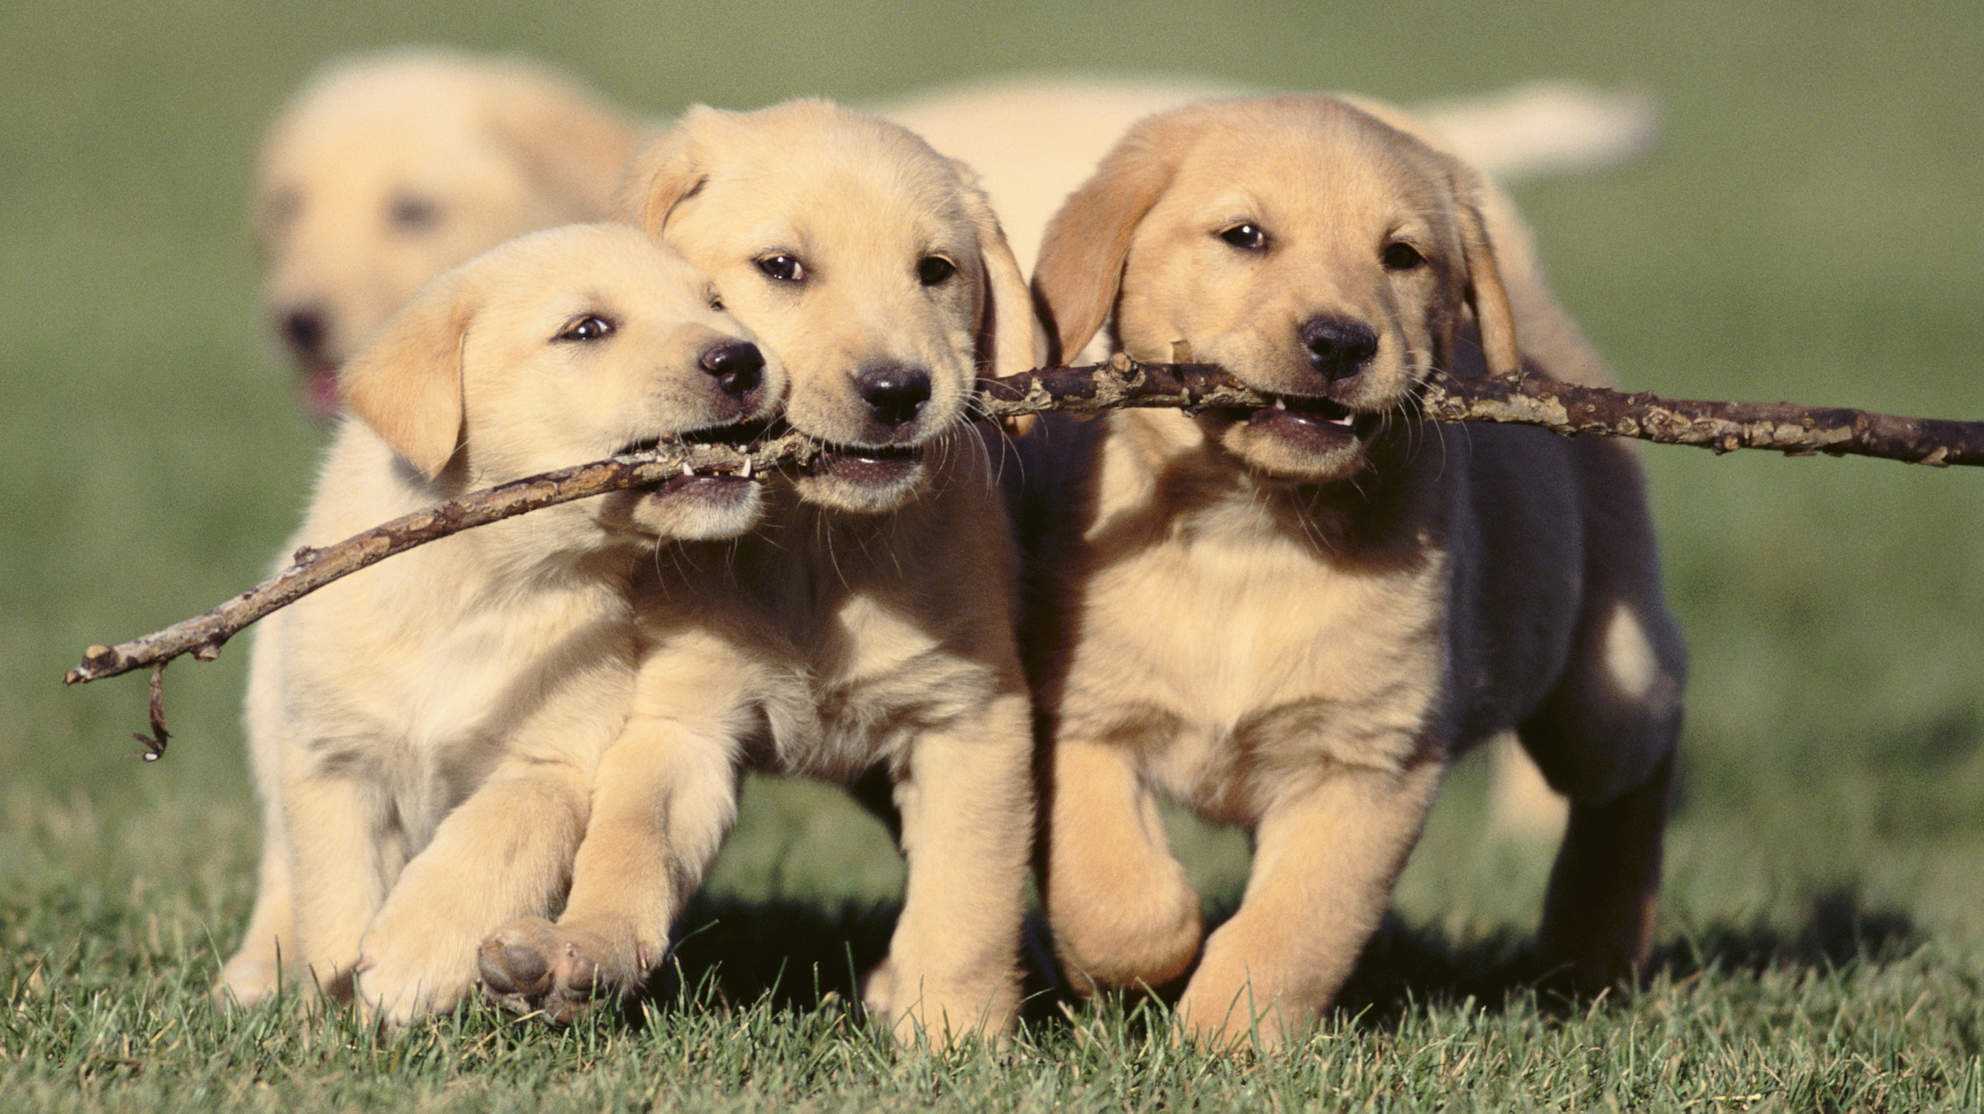 Cordial Puppy Puppies Are Generally Ready To Begin Puppy Class Weeks Enroll At This Y Should Be Haveall Happy National Puppy Alexandria Pet Pet Dog bark post How Long Does It Take For A Dog To Have Puppies